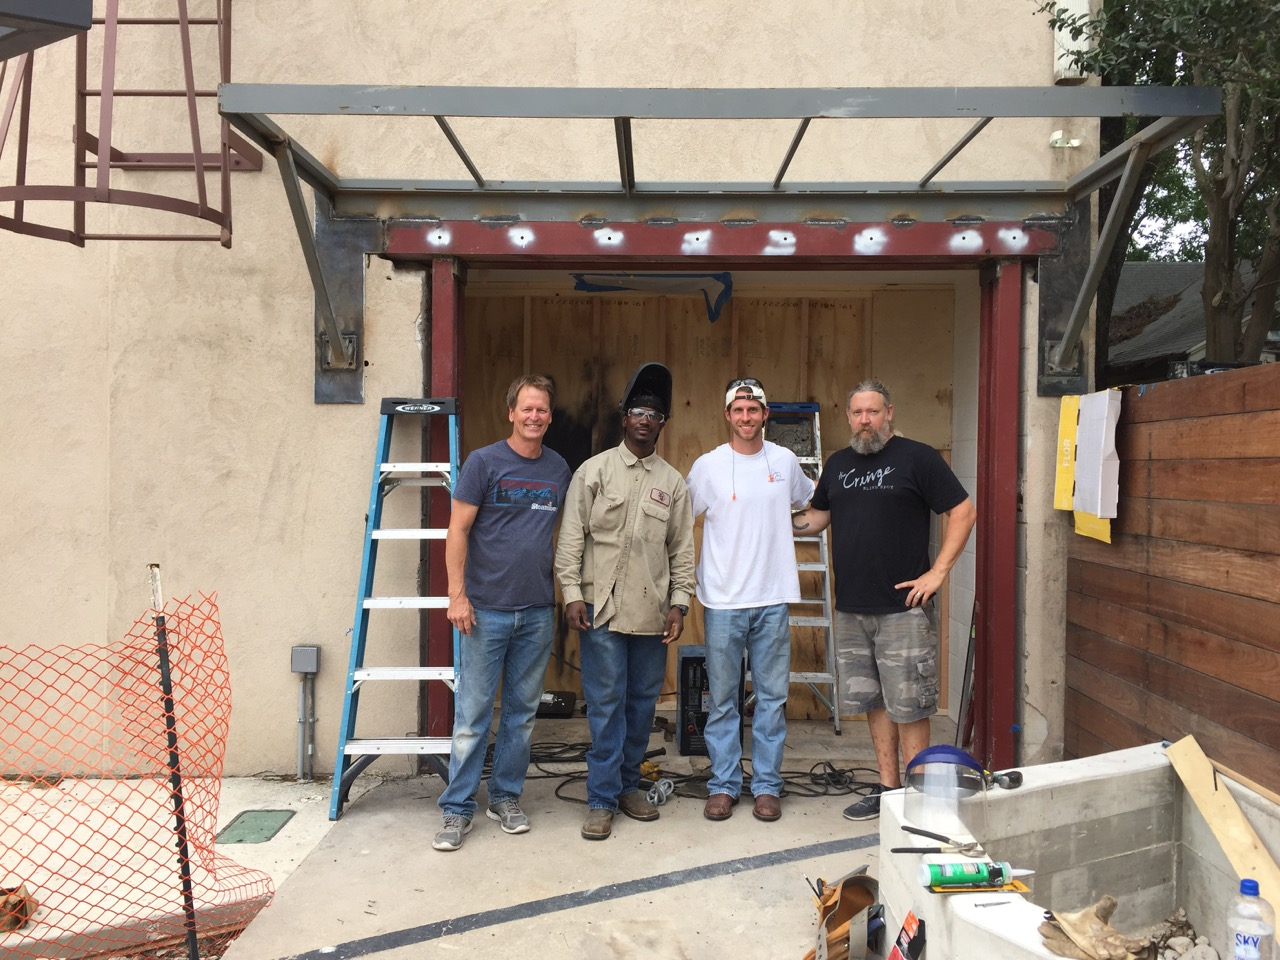 Last big construction obstacle was the front door and awning. The studio was constructed by Fred Willams Construction.  [left to right] Bobby Layne (lead carpenter), John Reginald (welder), Aaron Somers (apprentice carpenter), Matt Dunnam (lead carpenter)(May 2017)